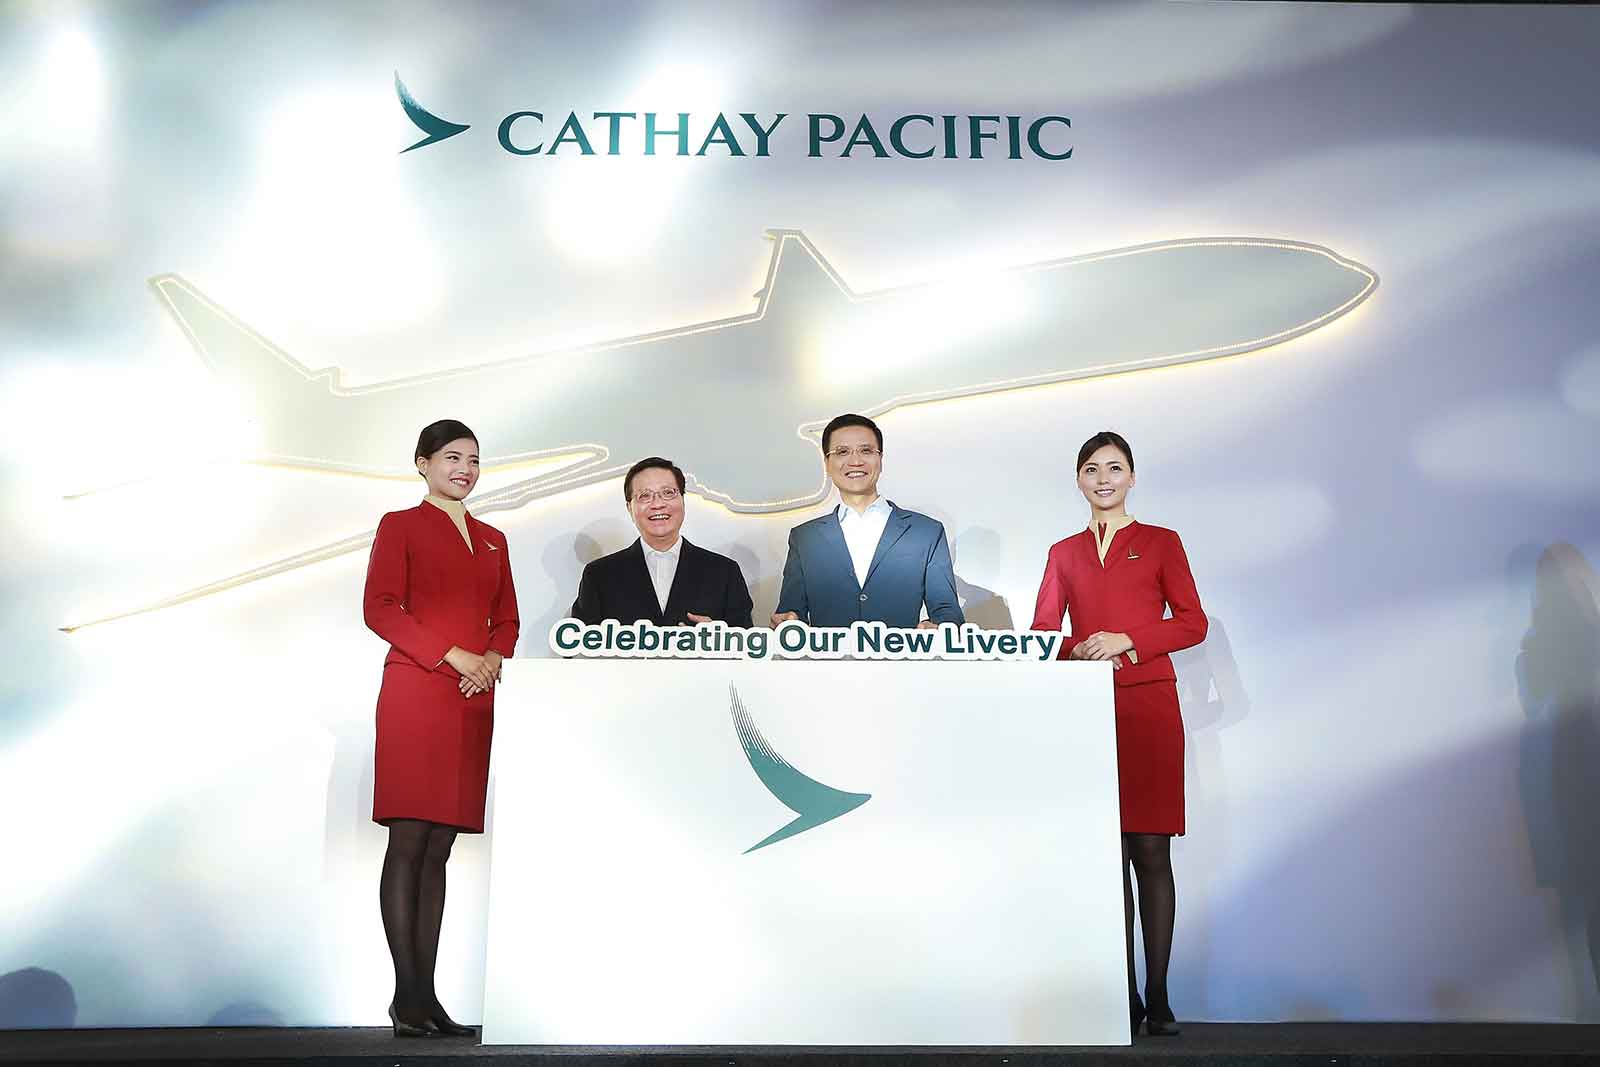 Cathay Pacific celebrate new livery